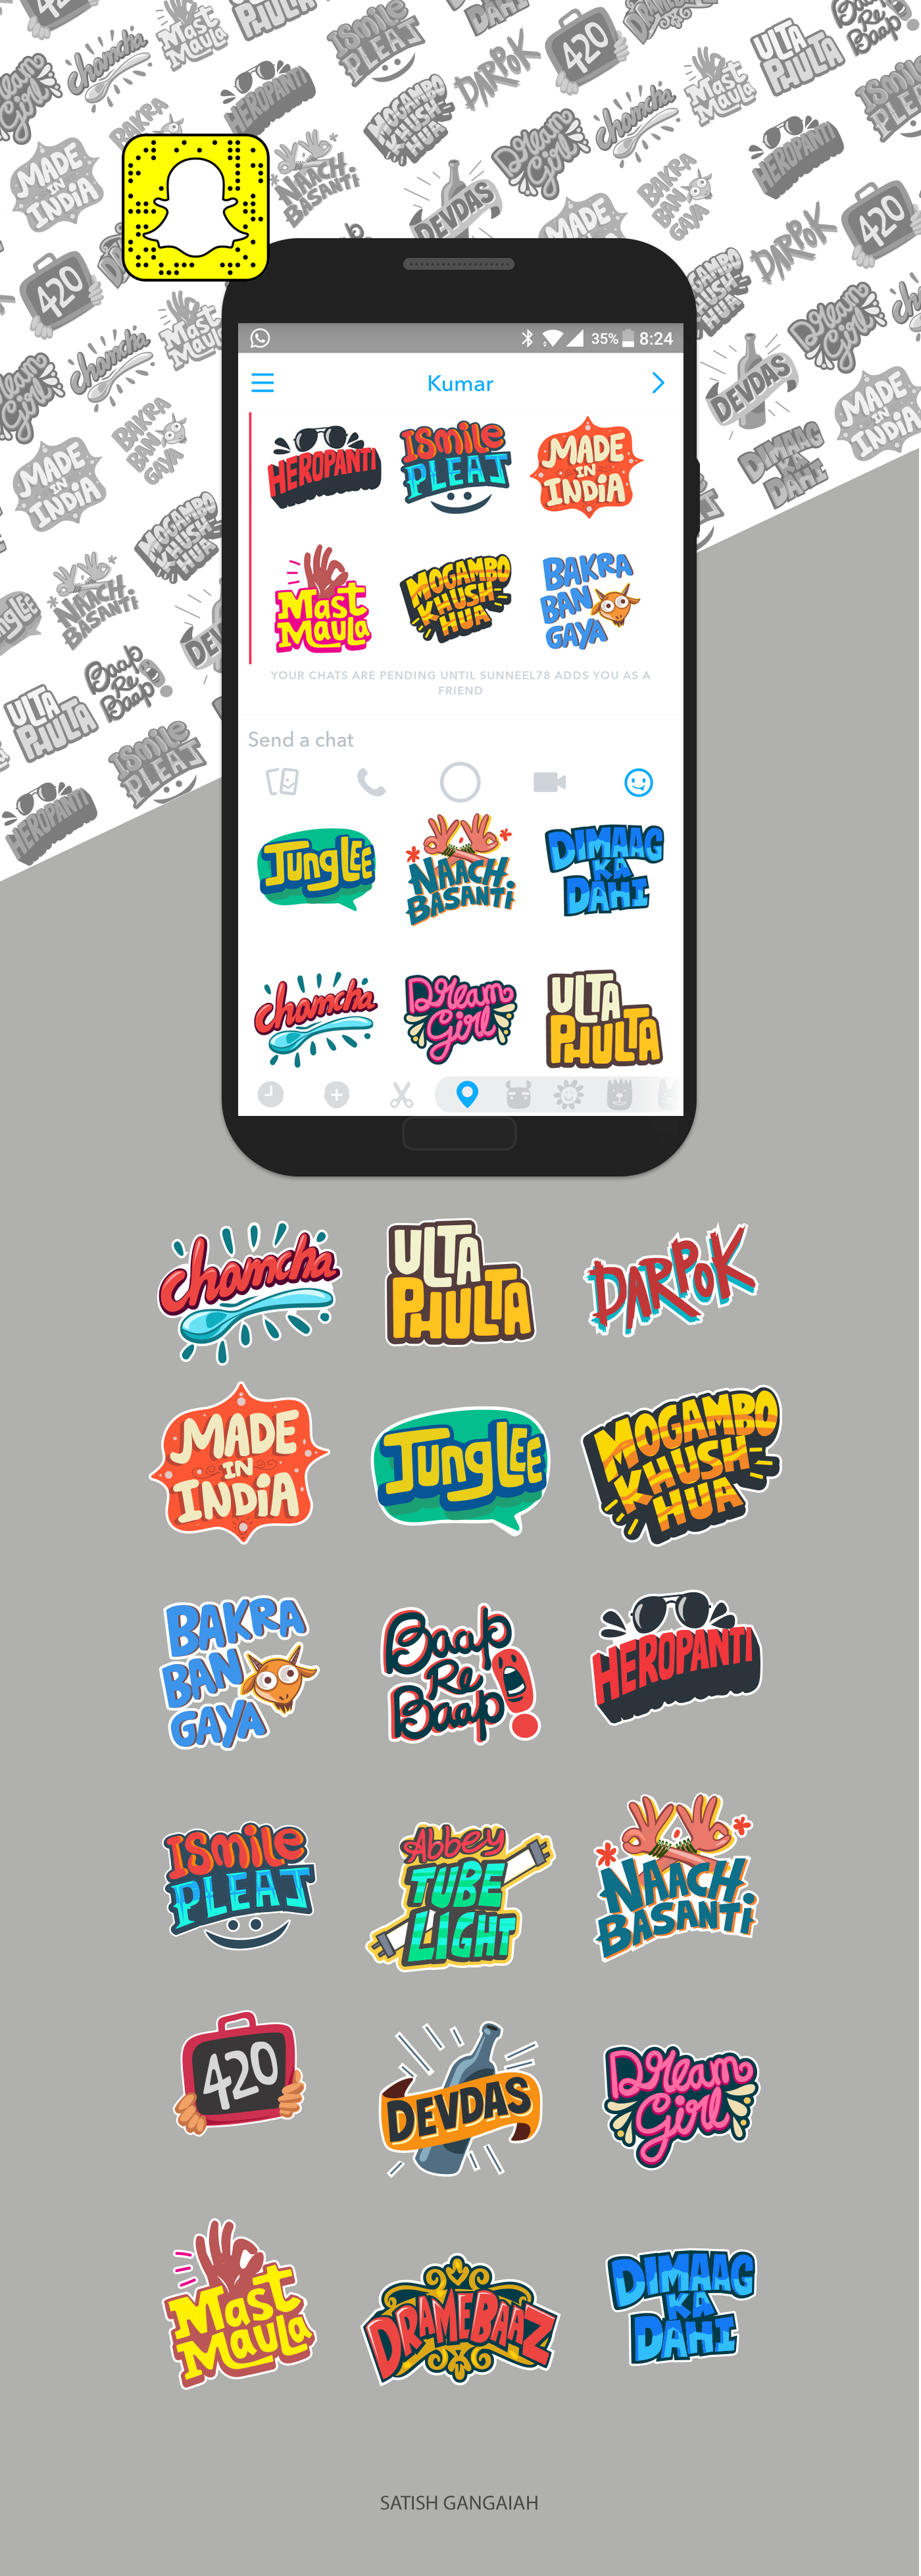 Sticker Design Snapchat 2 on Behance in 2020 Design